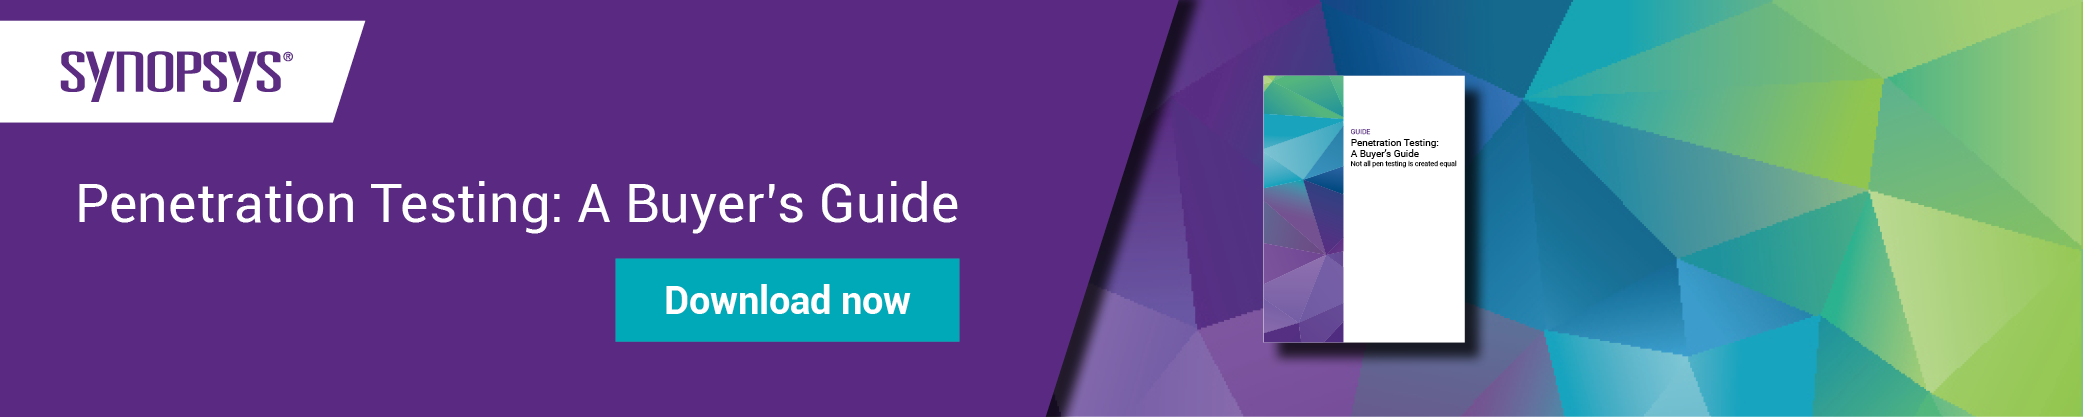 Penetration testing: A Buyer's Guide | Synopsys